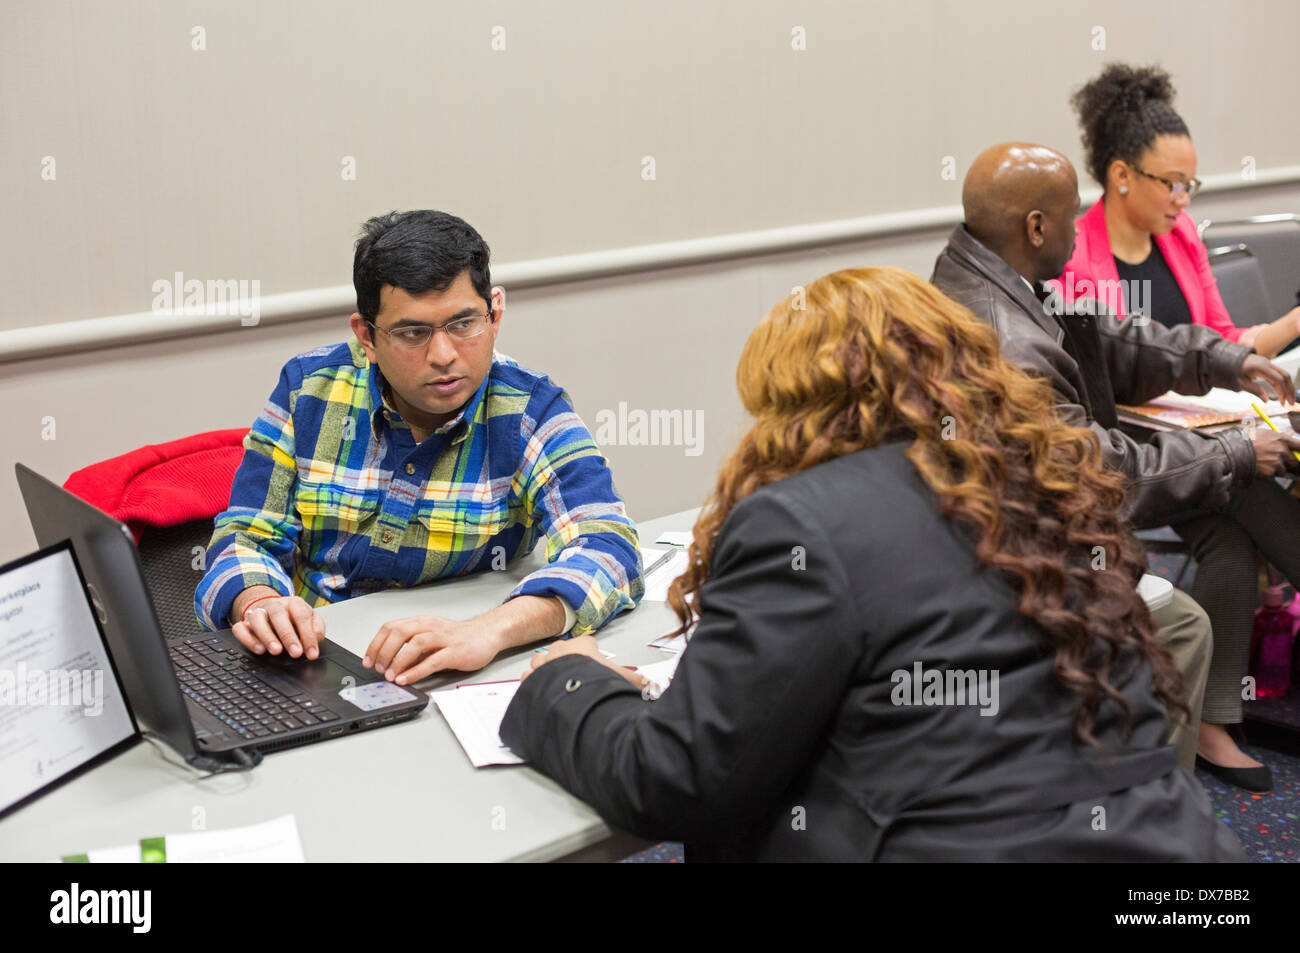 Detroit, Michigan - Health care 'navigators' sign people up for health insurance plans under the Affordable Care Act. - Stock Image